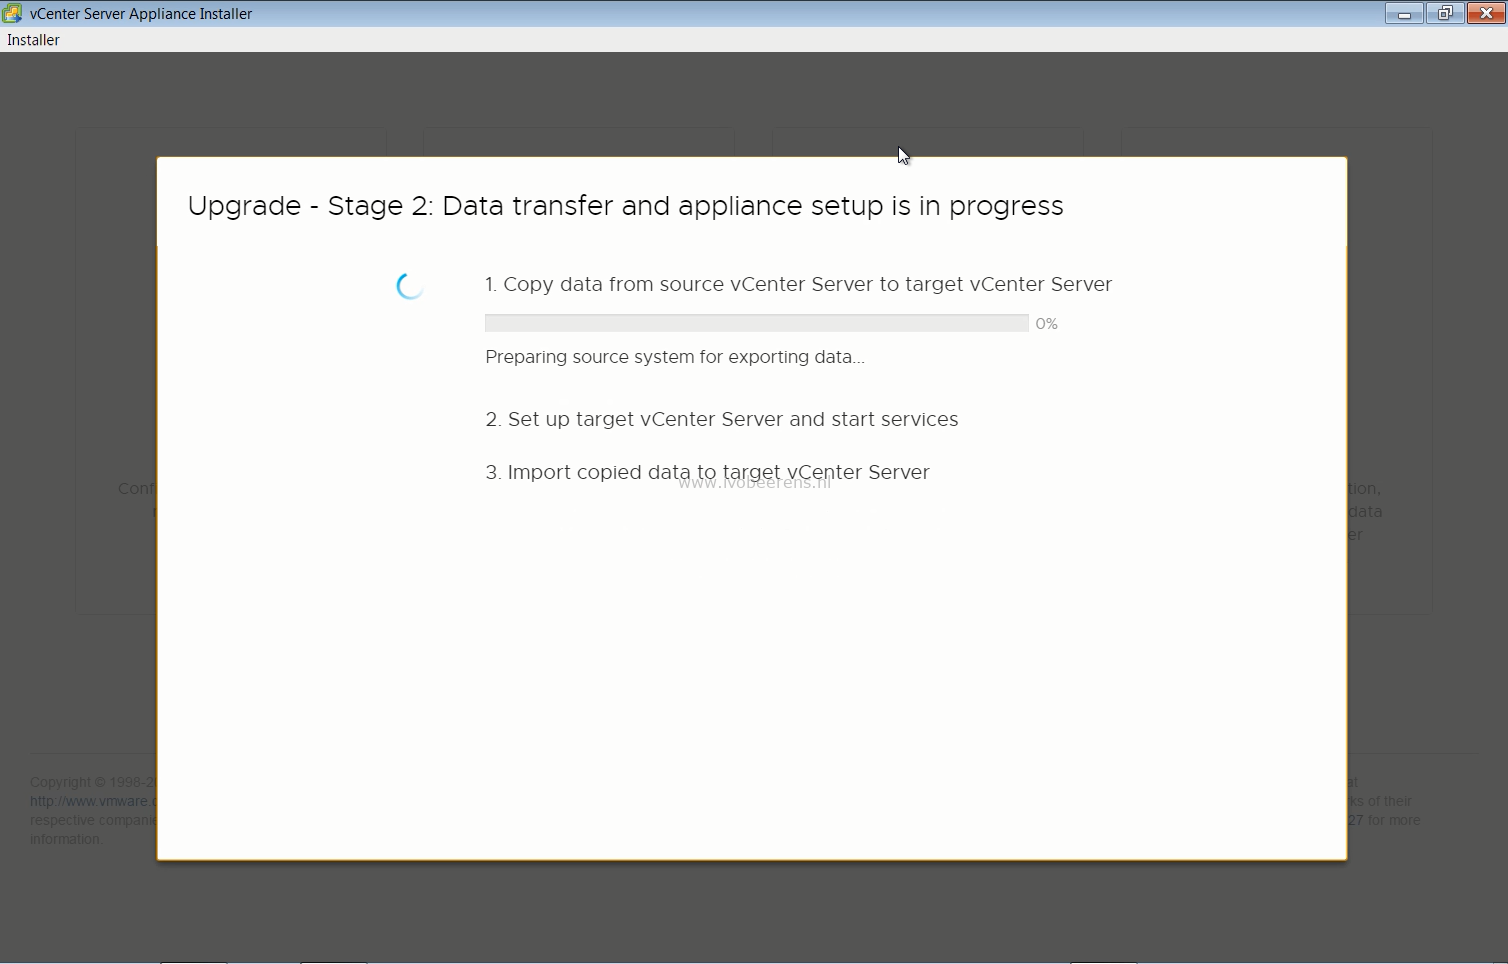 Upgrading a vCenter Server Appliance (VCSA) to version 6 7